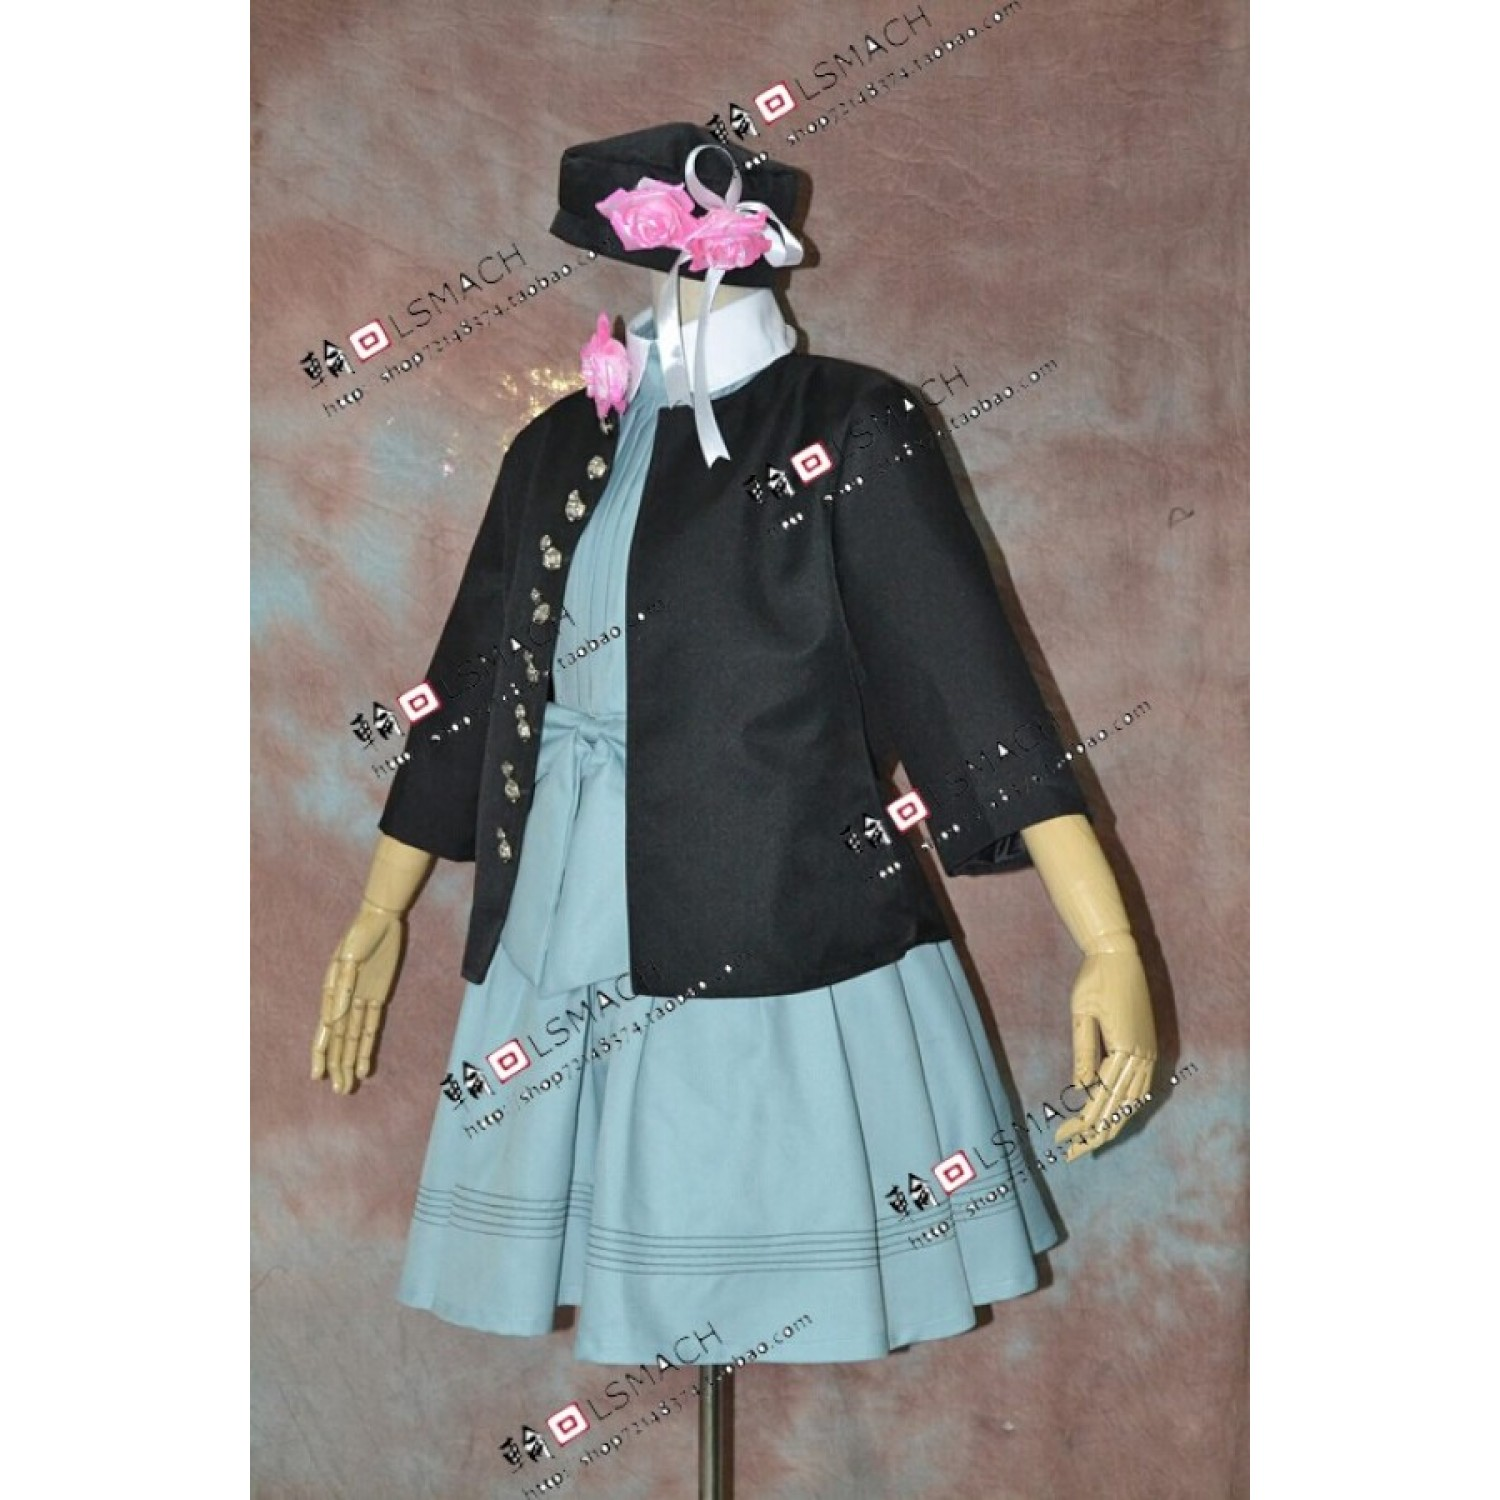 Amnesia Heroline Japan Anime Cosplay Custome